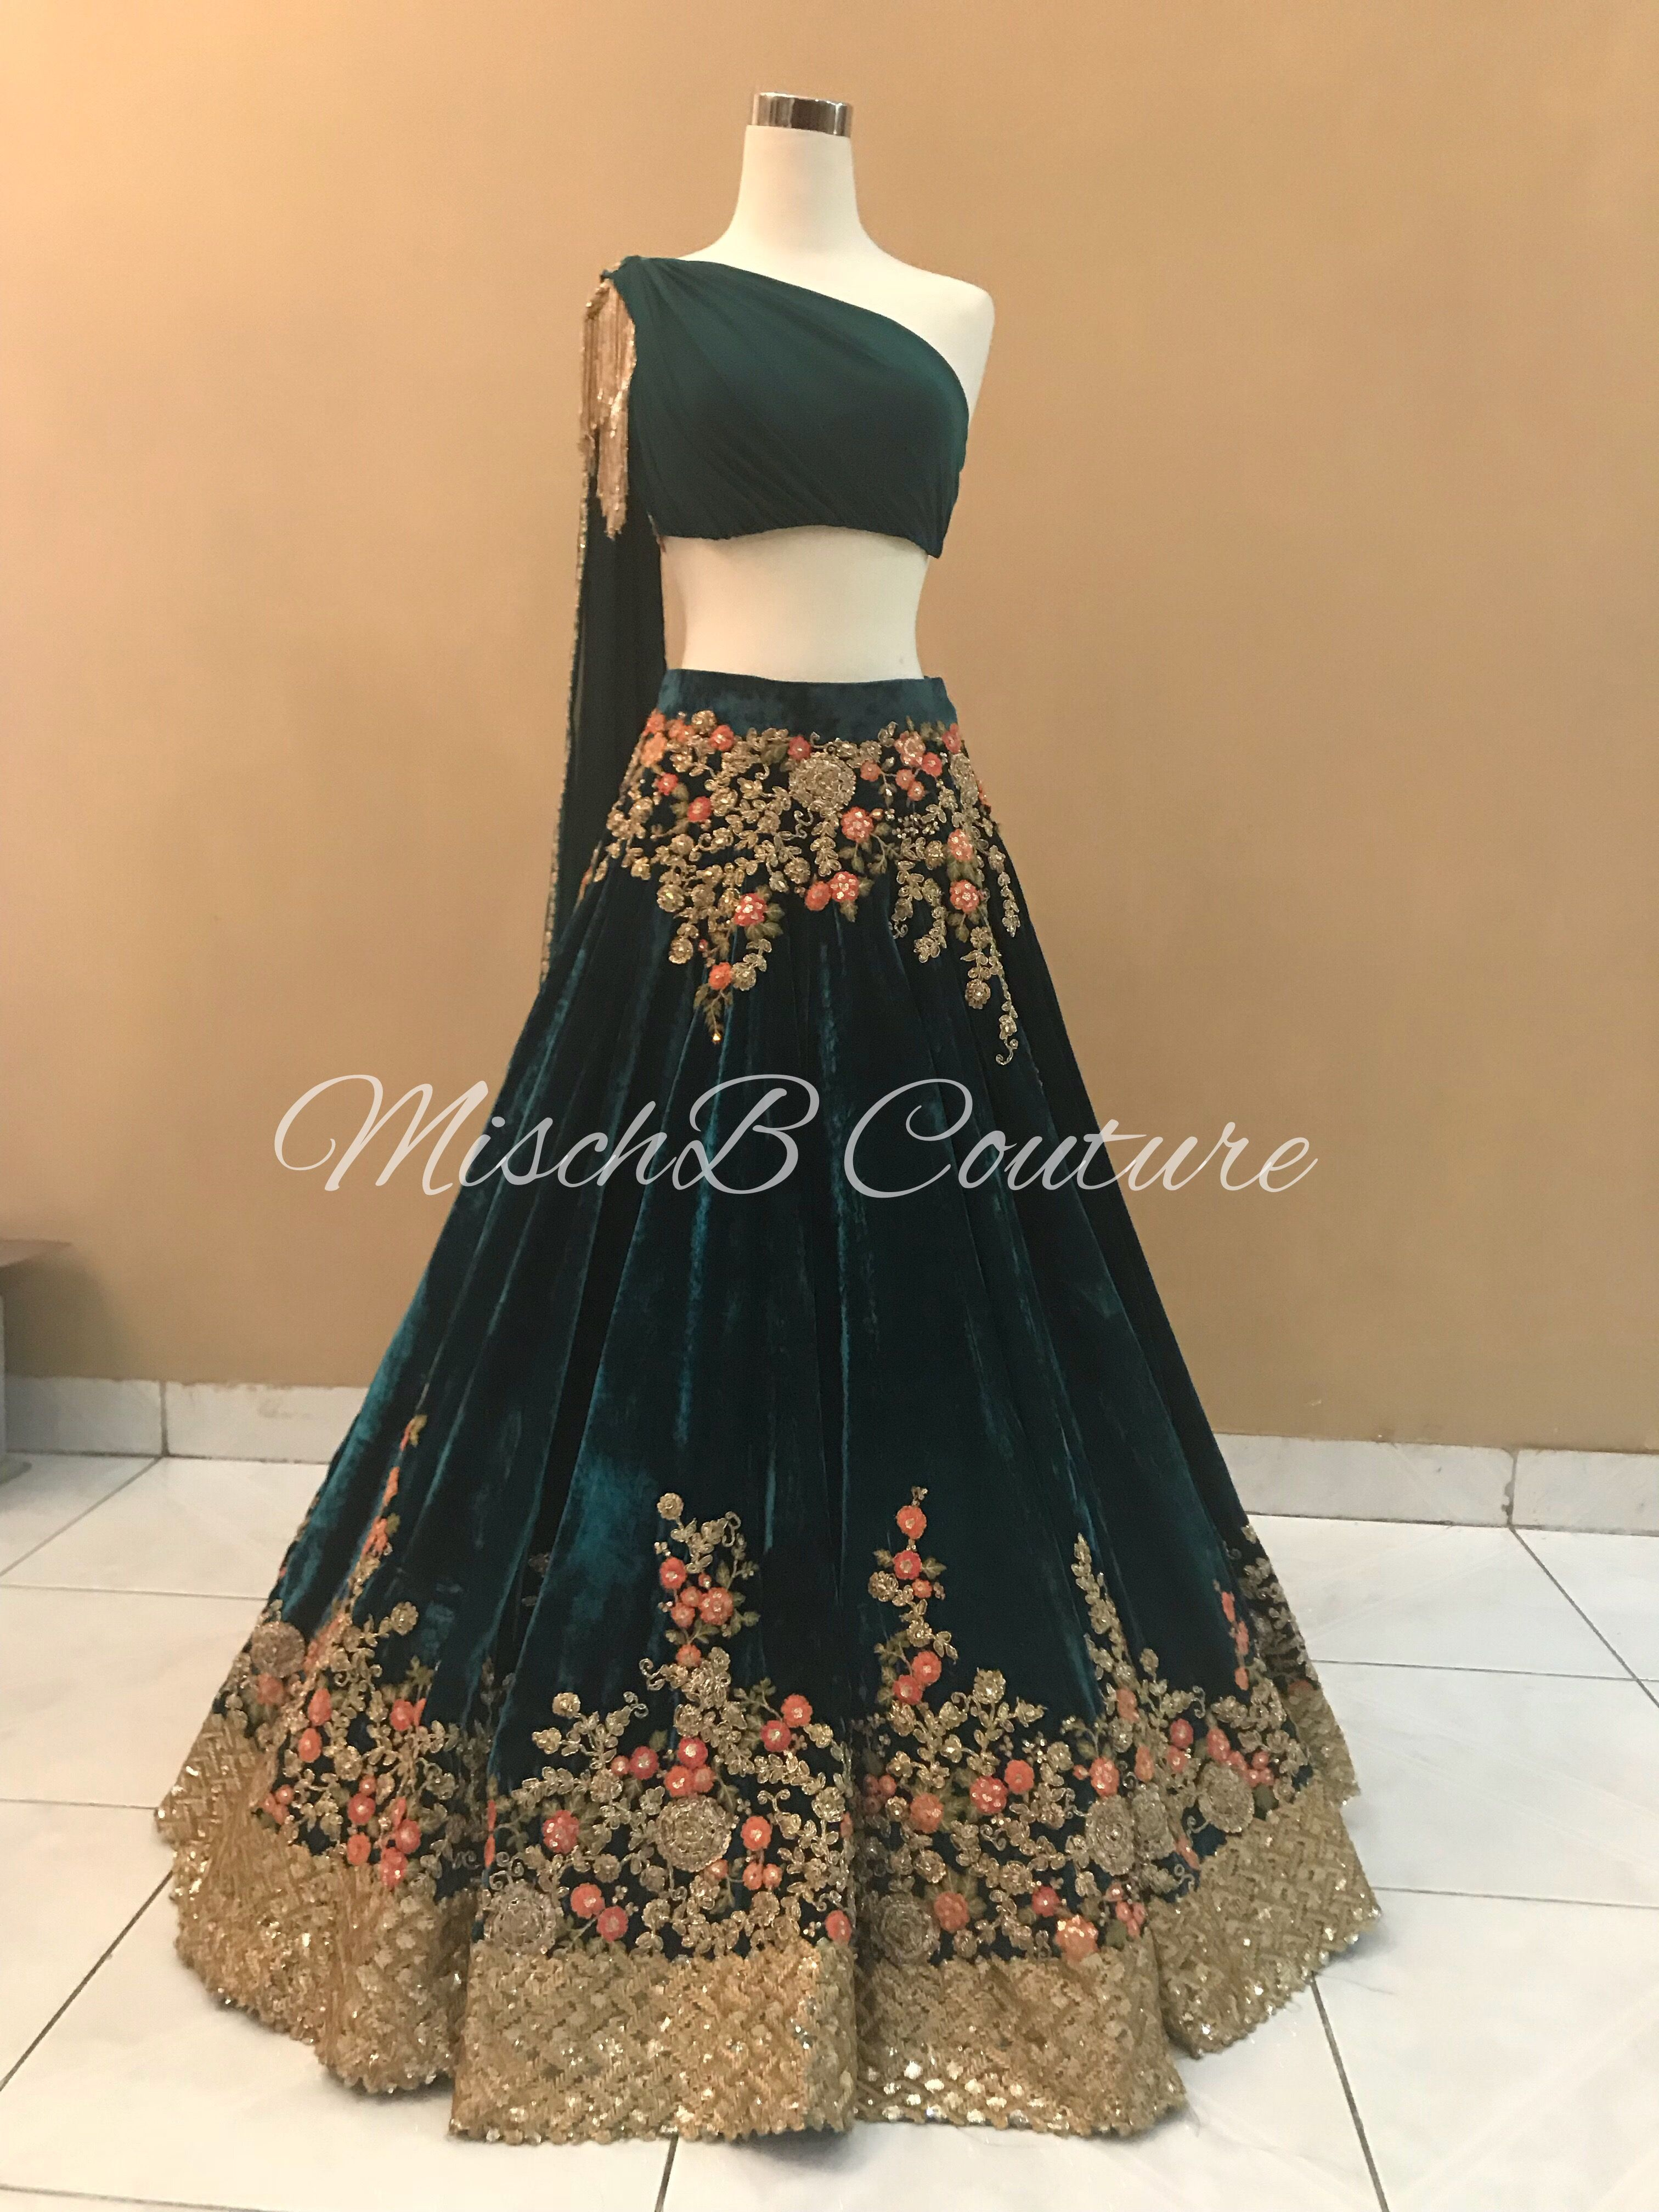 Dresses to wear at a wedding  MischB Couture teal lehenga  lehangas  Pinterest  Teal Couture